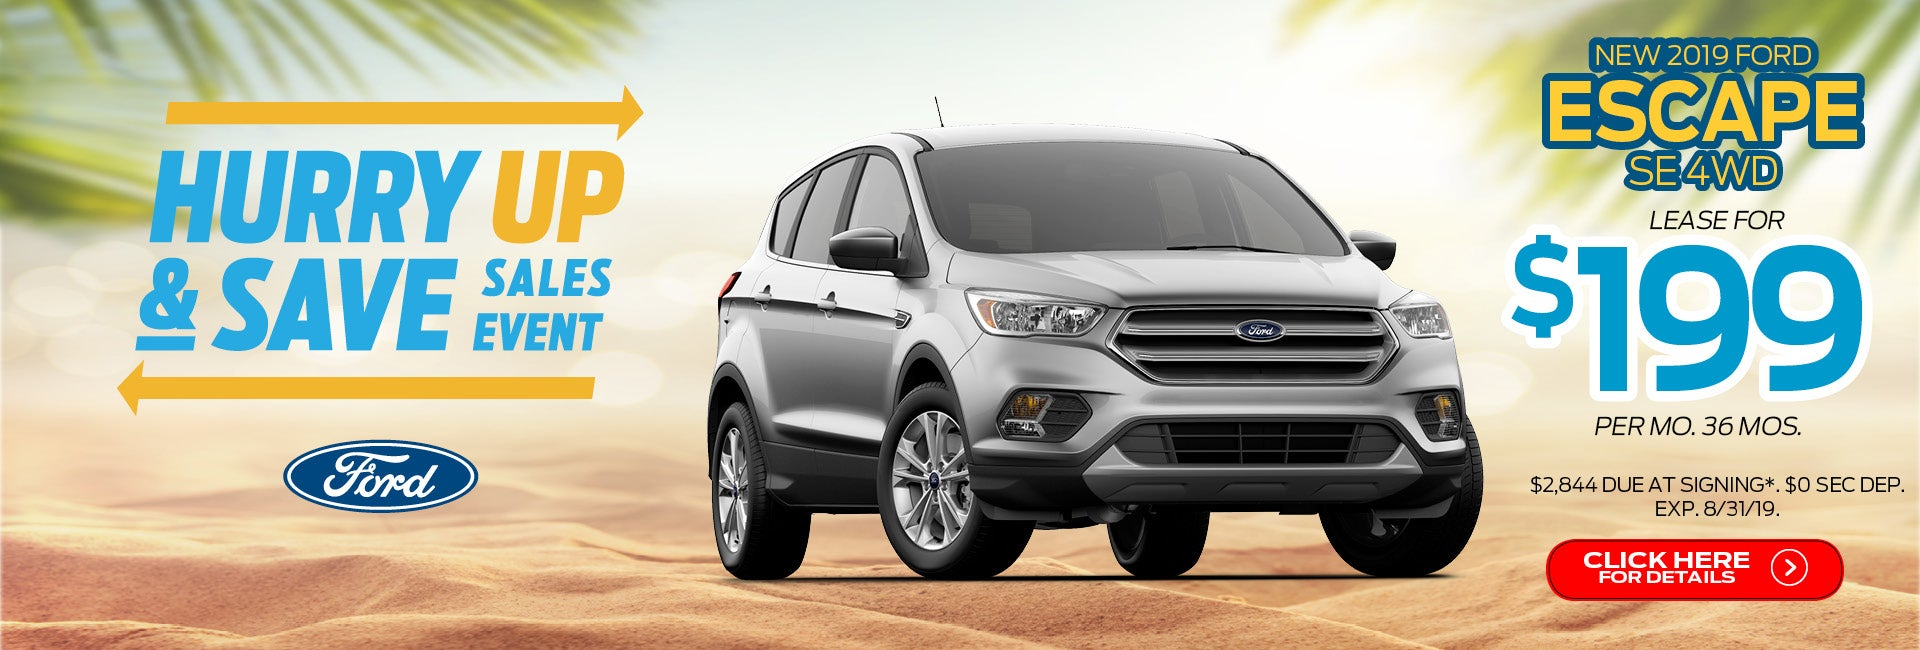 Ford Escape Lease >> Ford Lease Specials